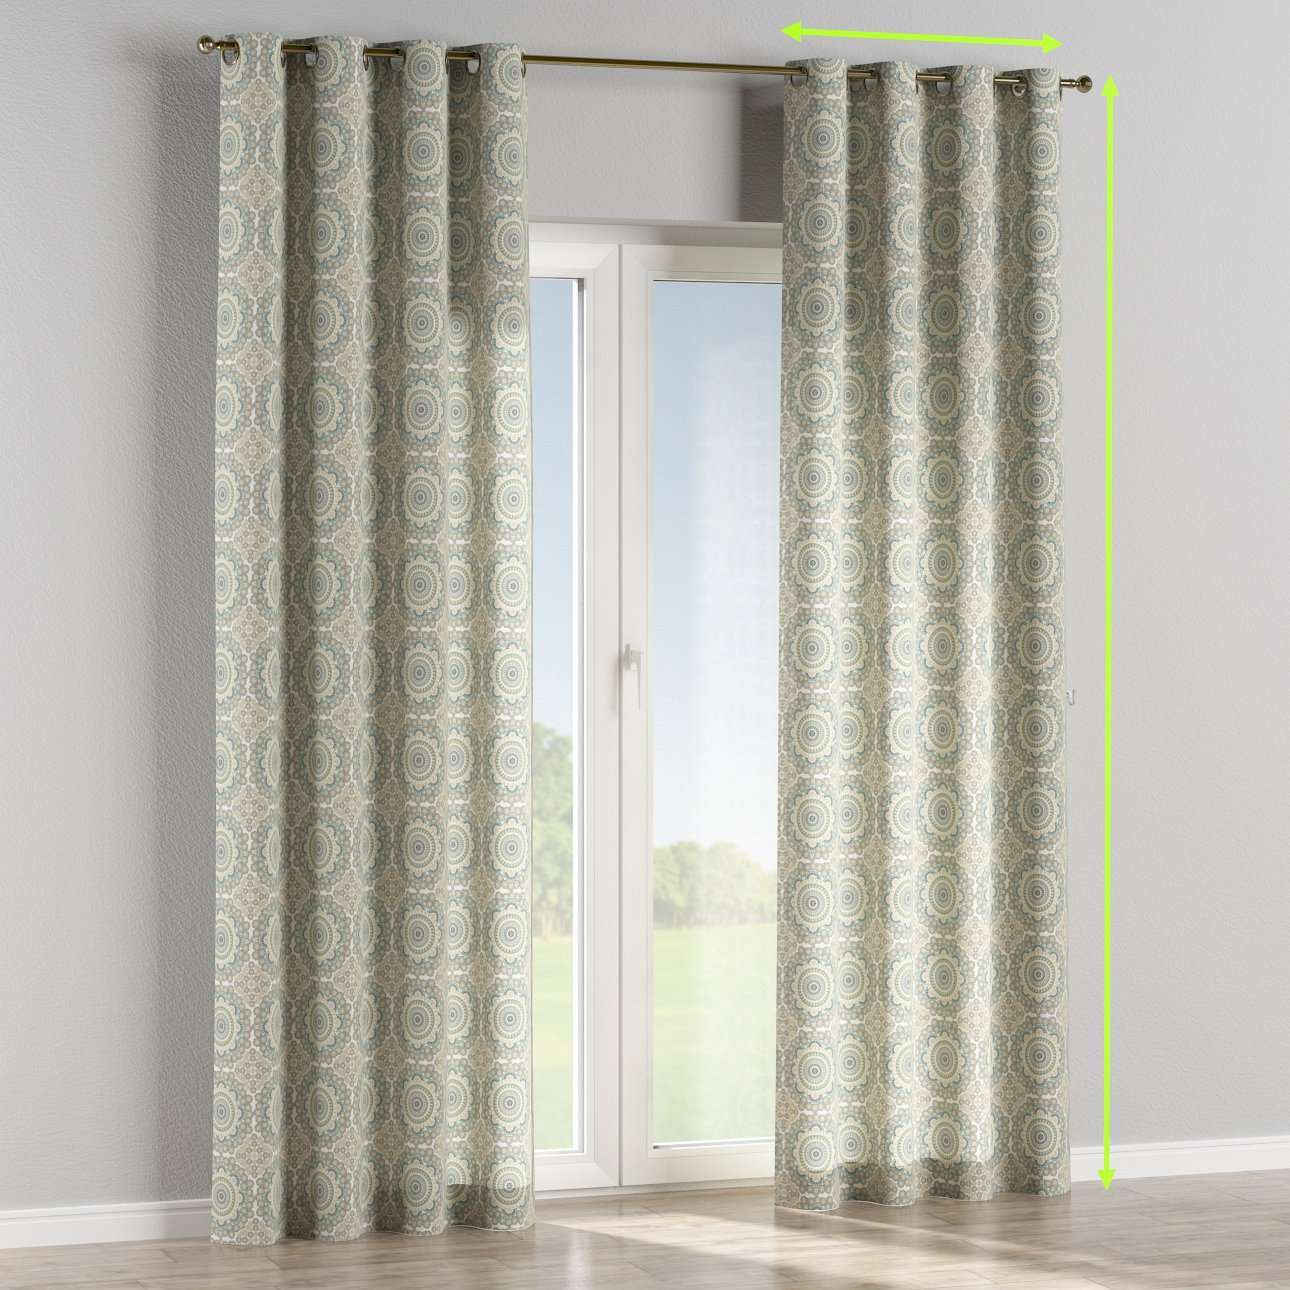 Eyelet curtains in collection Comic Book & Geo Prints, fabric: 137-84